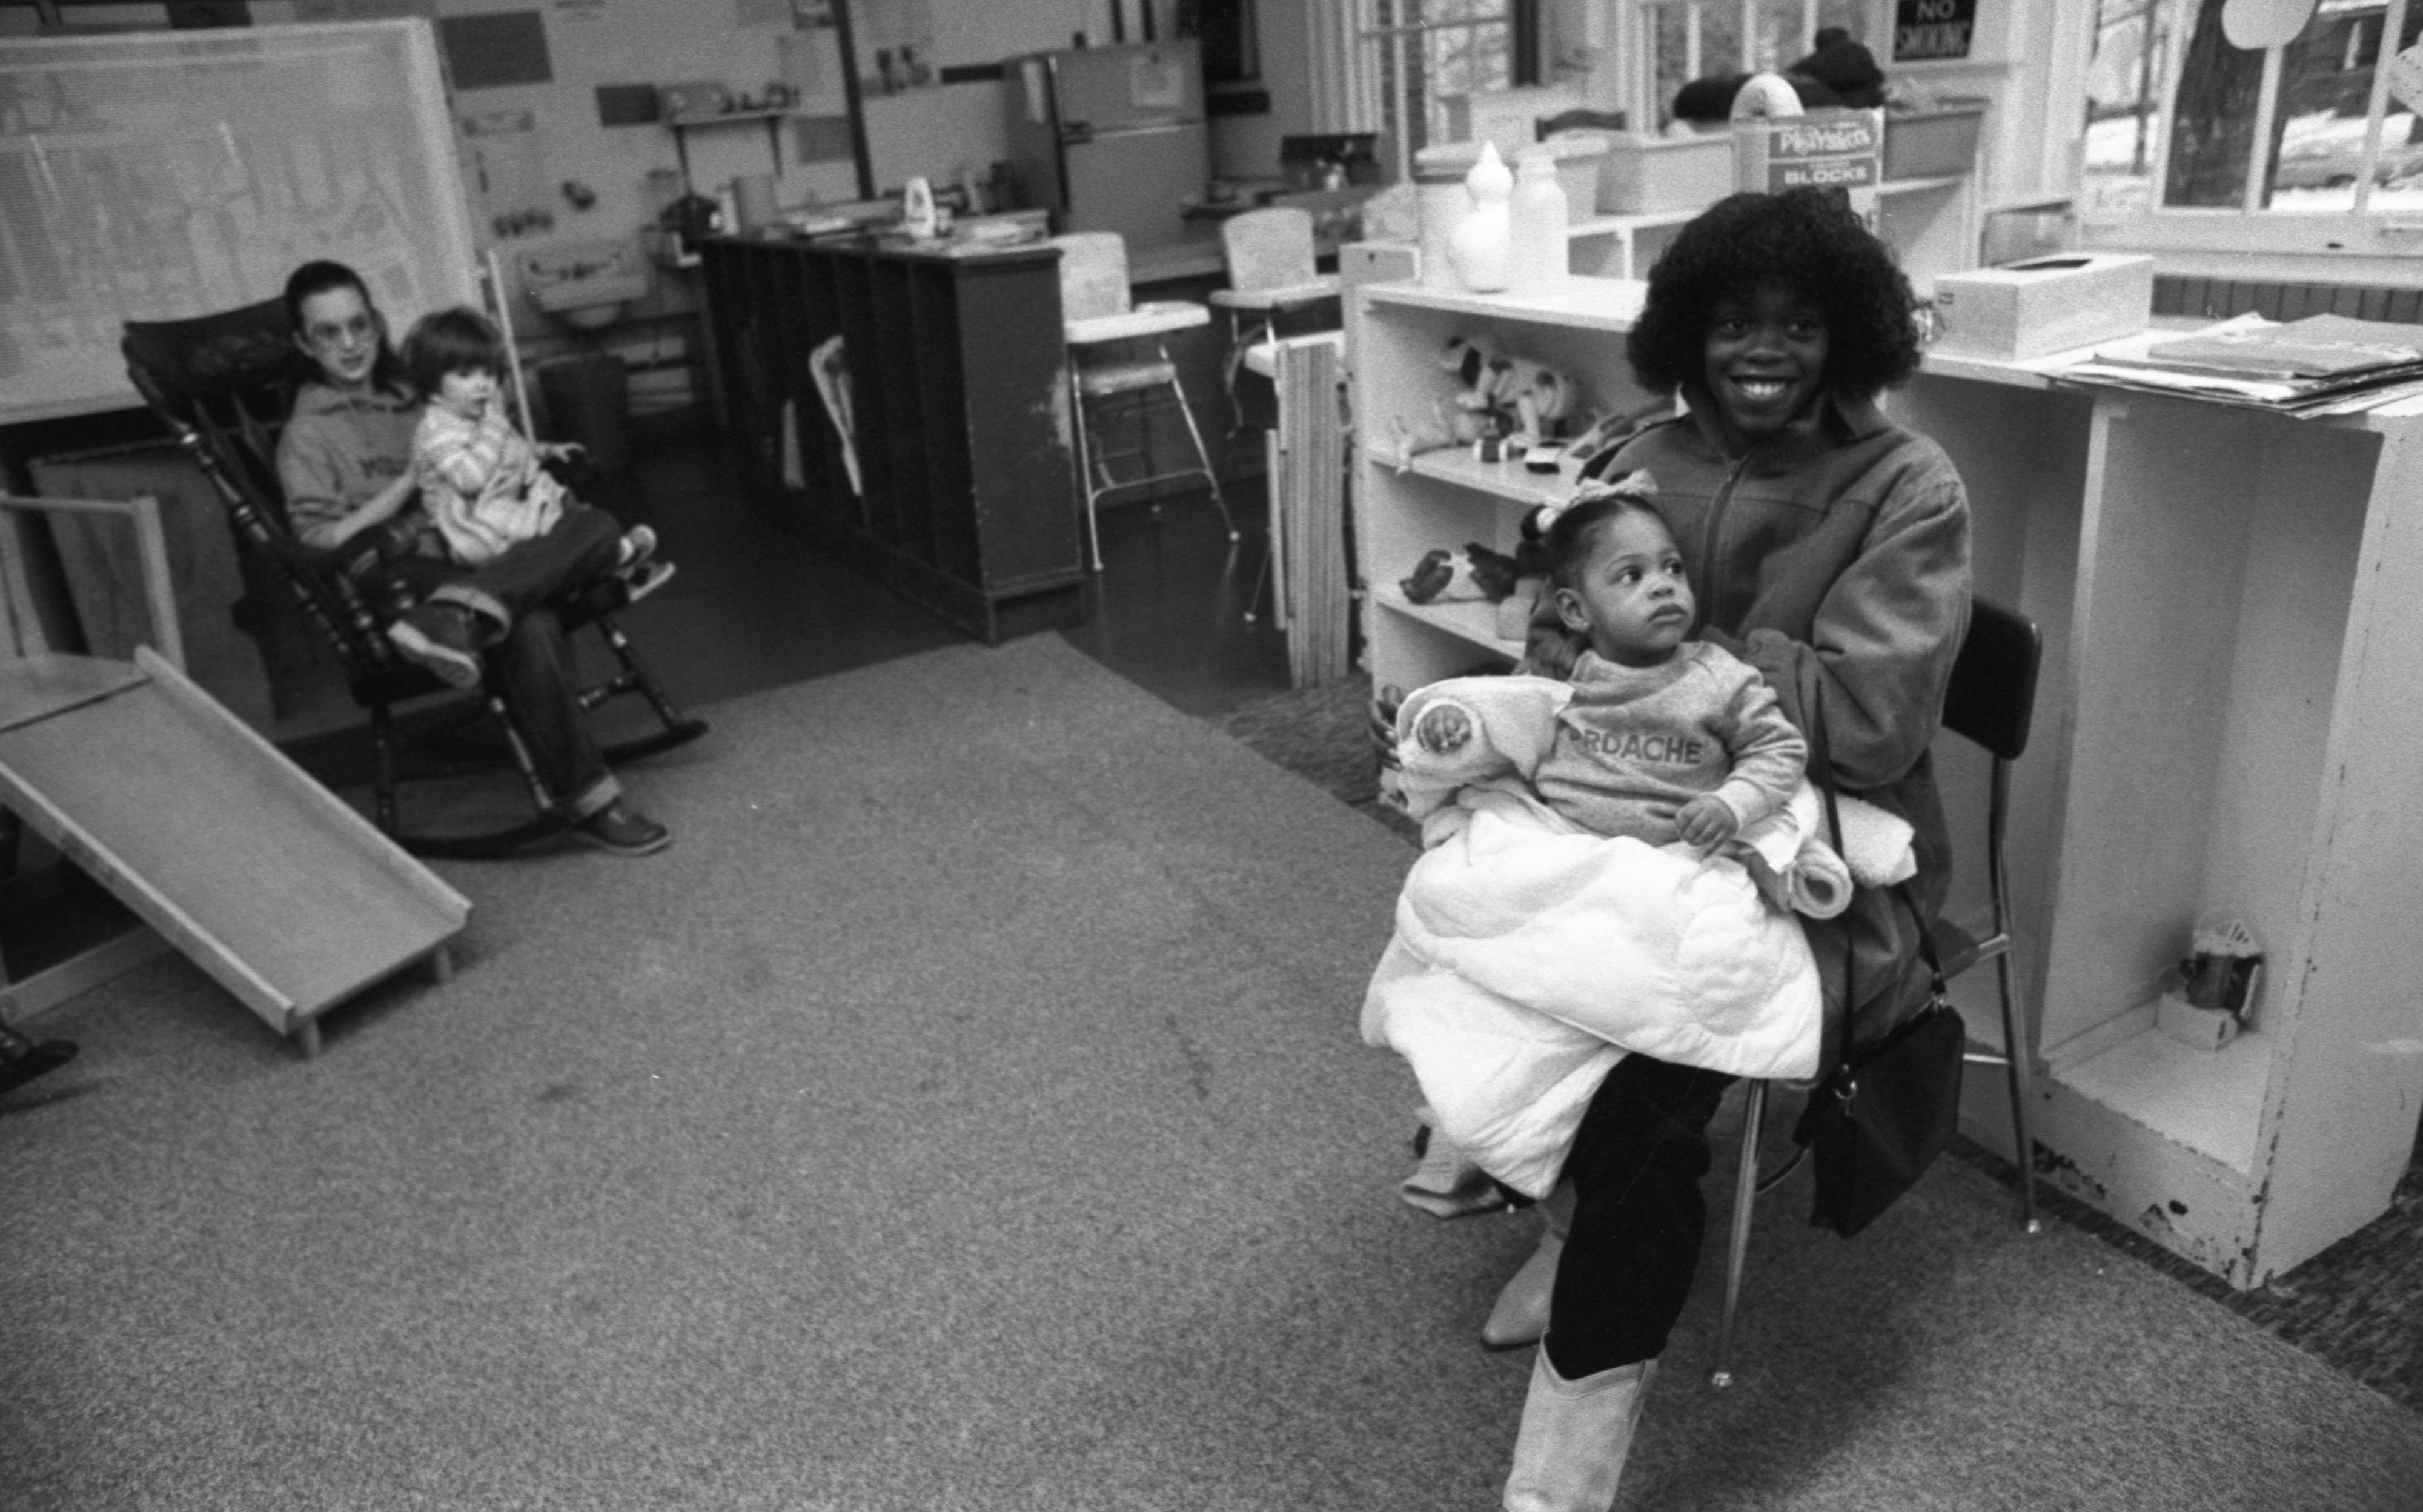 Dianna Taylor Participates In Washtenaw County's School-Age Parent Program, January 1982 image